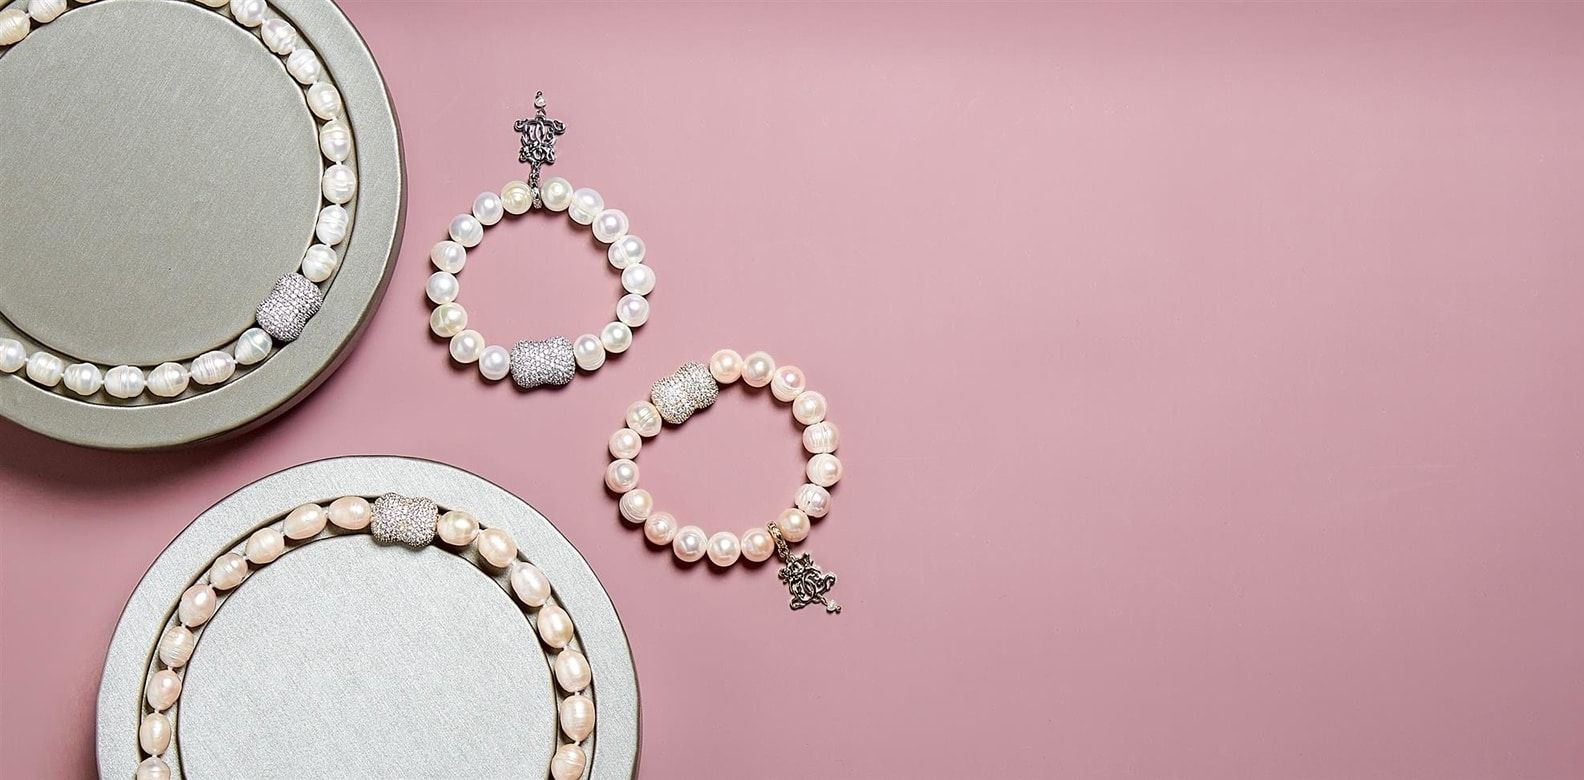 Mother's Day Giveaway: Two Bowerhaus Pearl Necklace And Bracelet Gift Sets